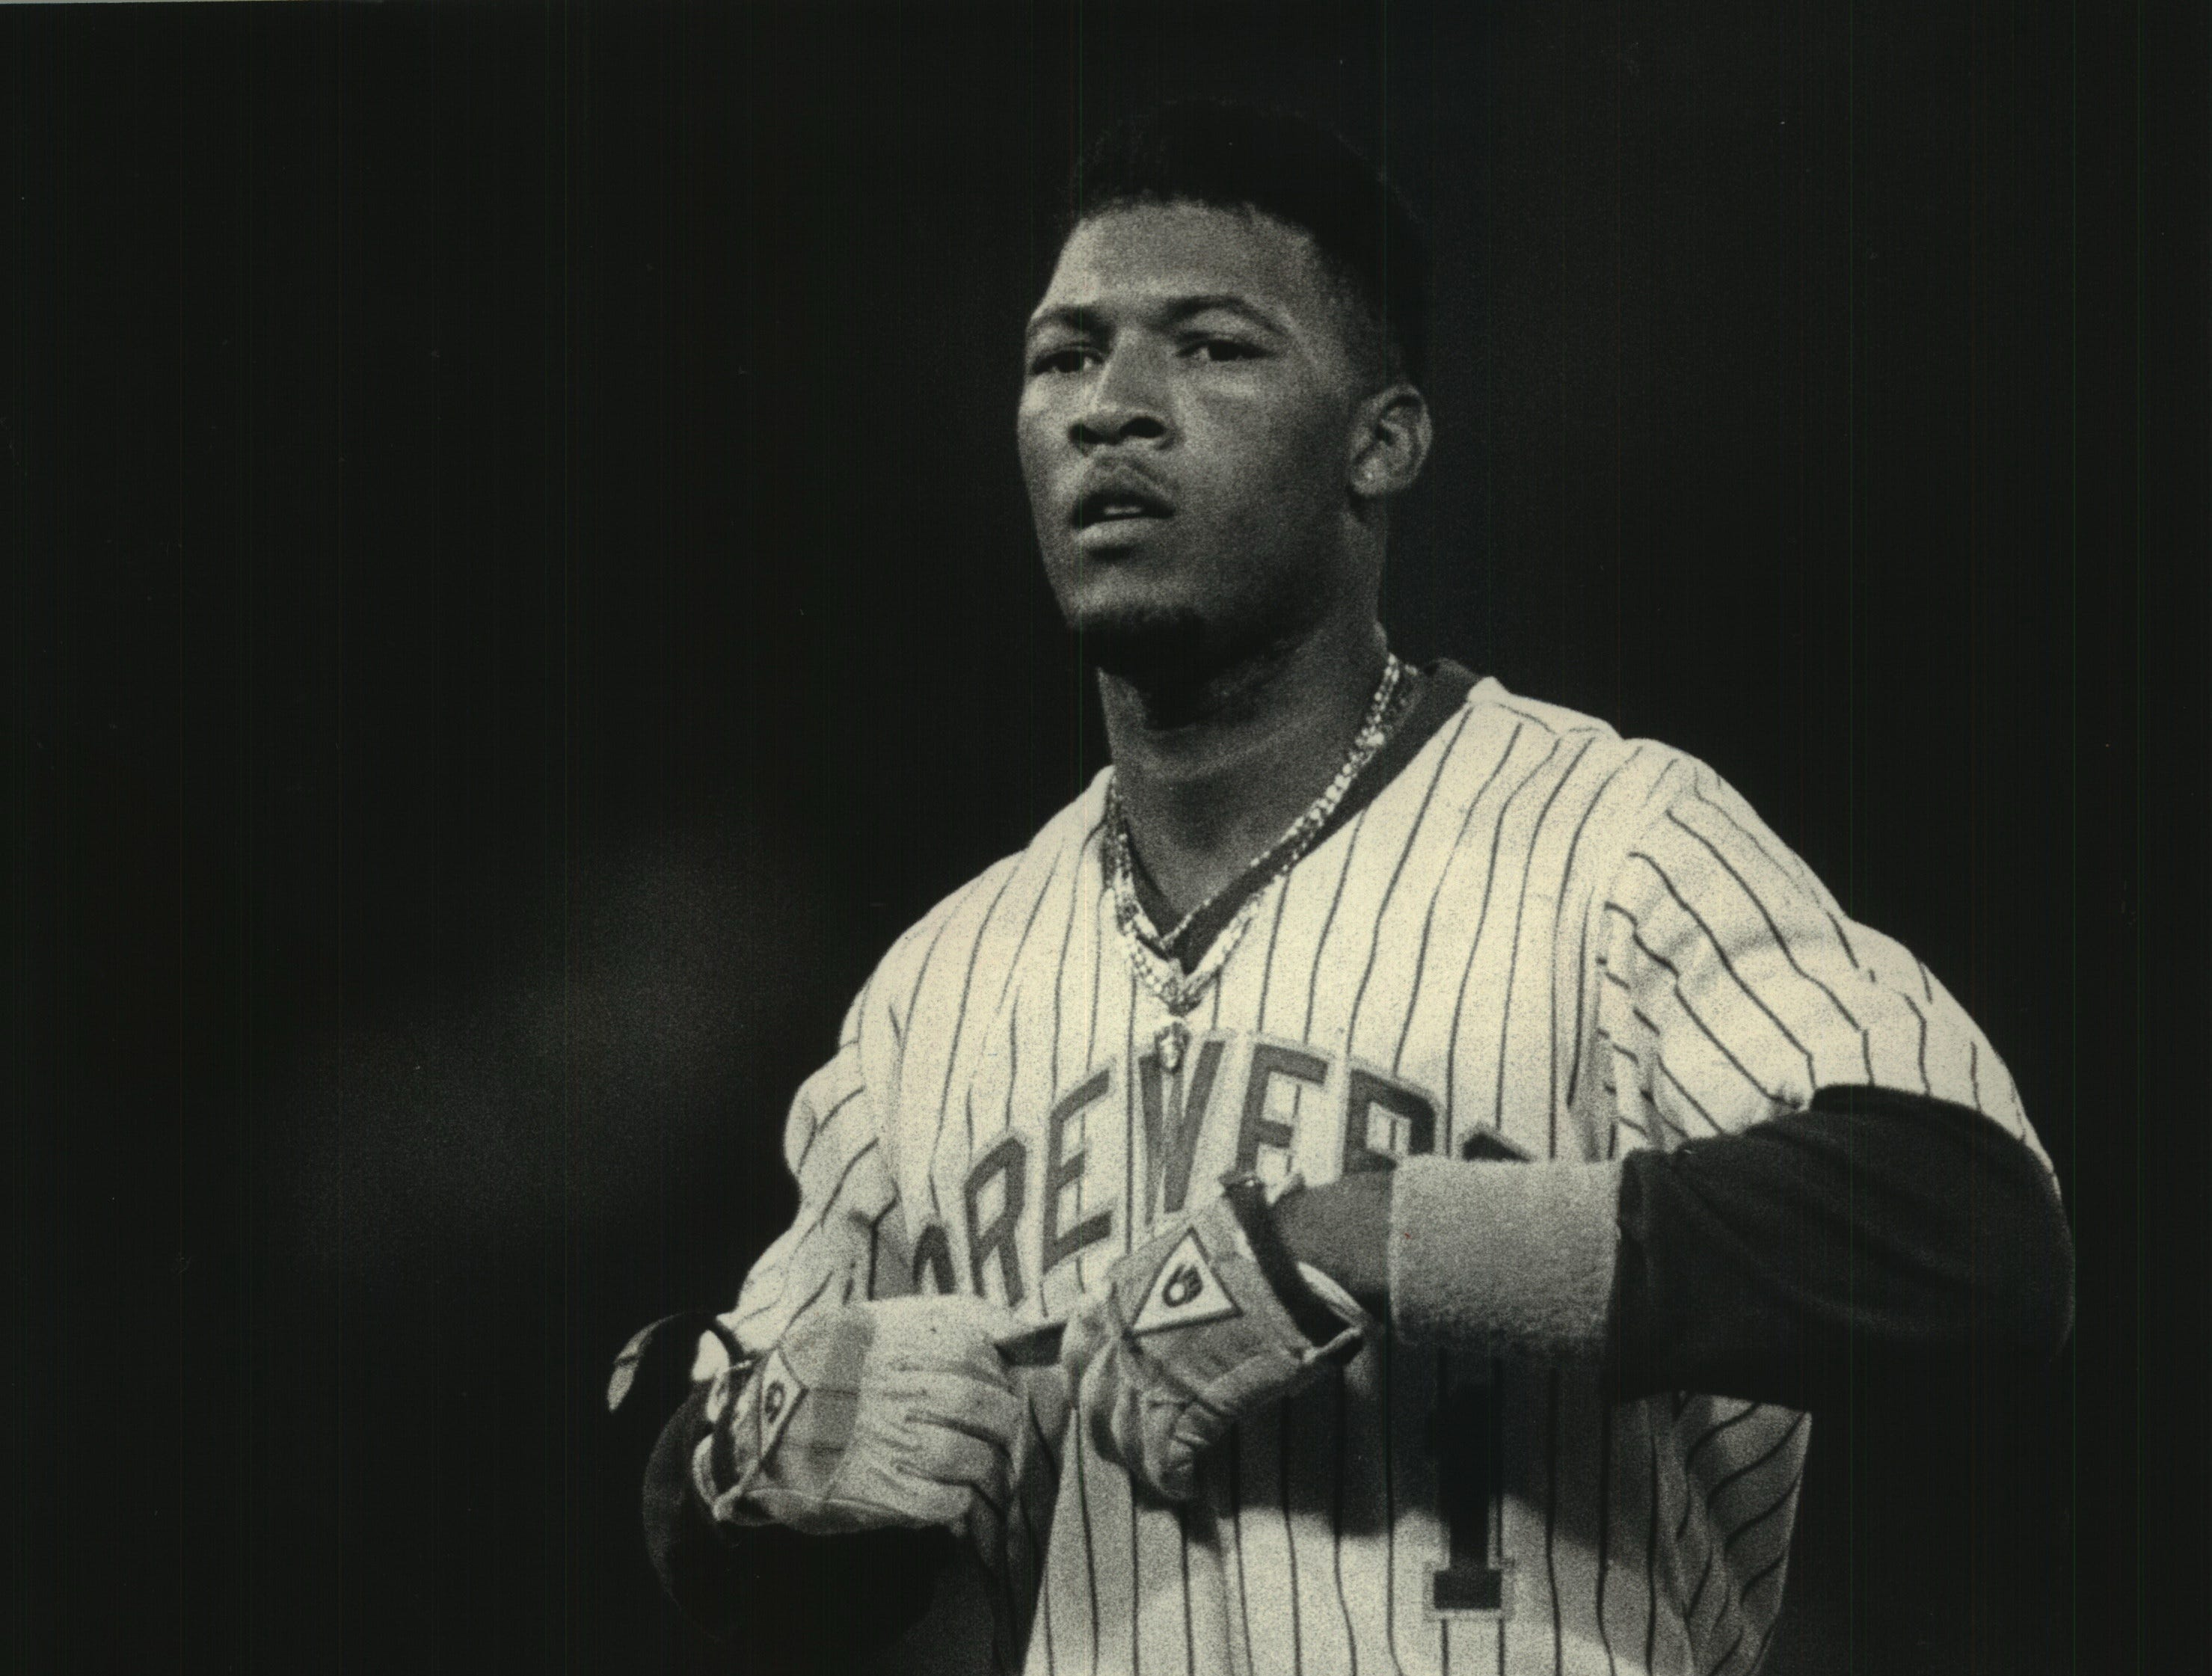 The Brewers' Gary Sheffield had a monster career out of Milwaukee after the team traded him in 1992.